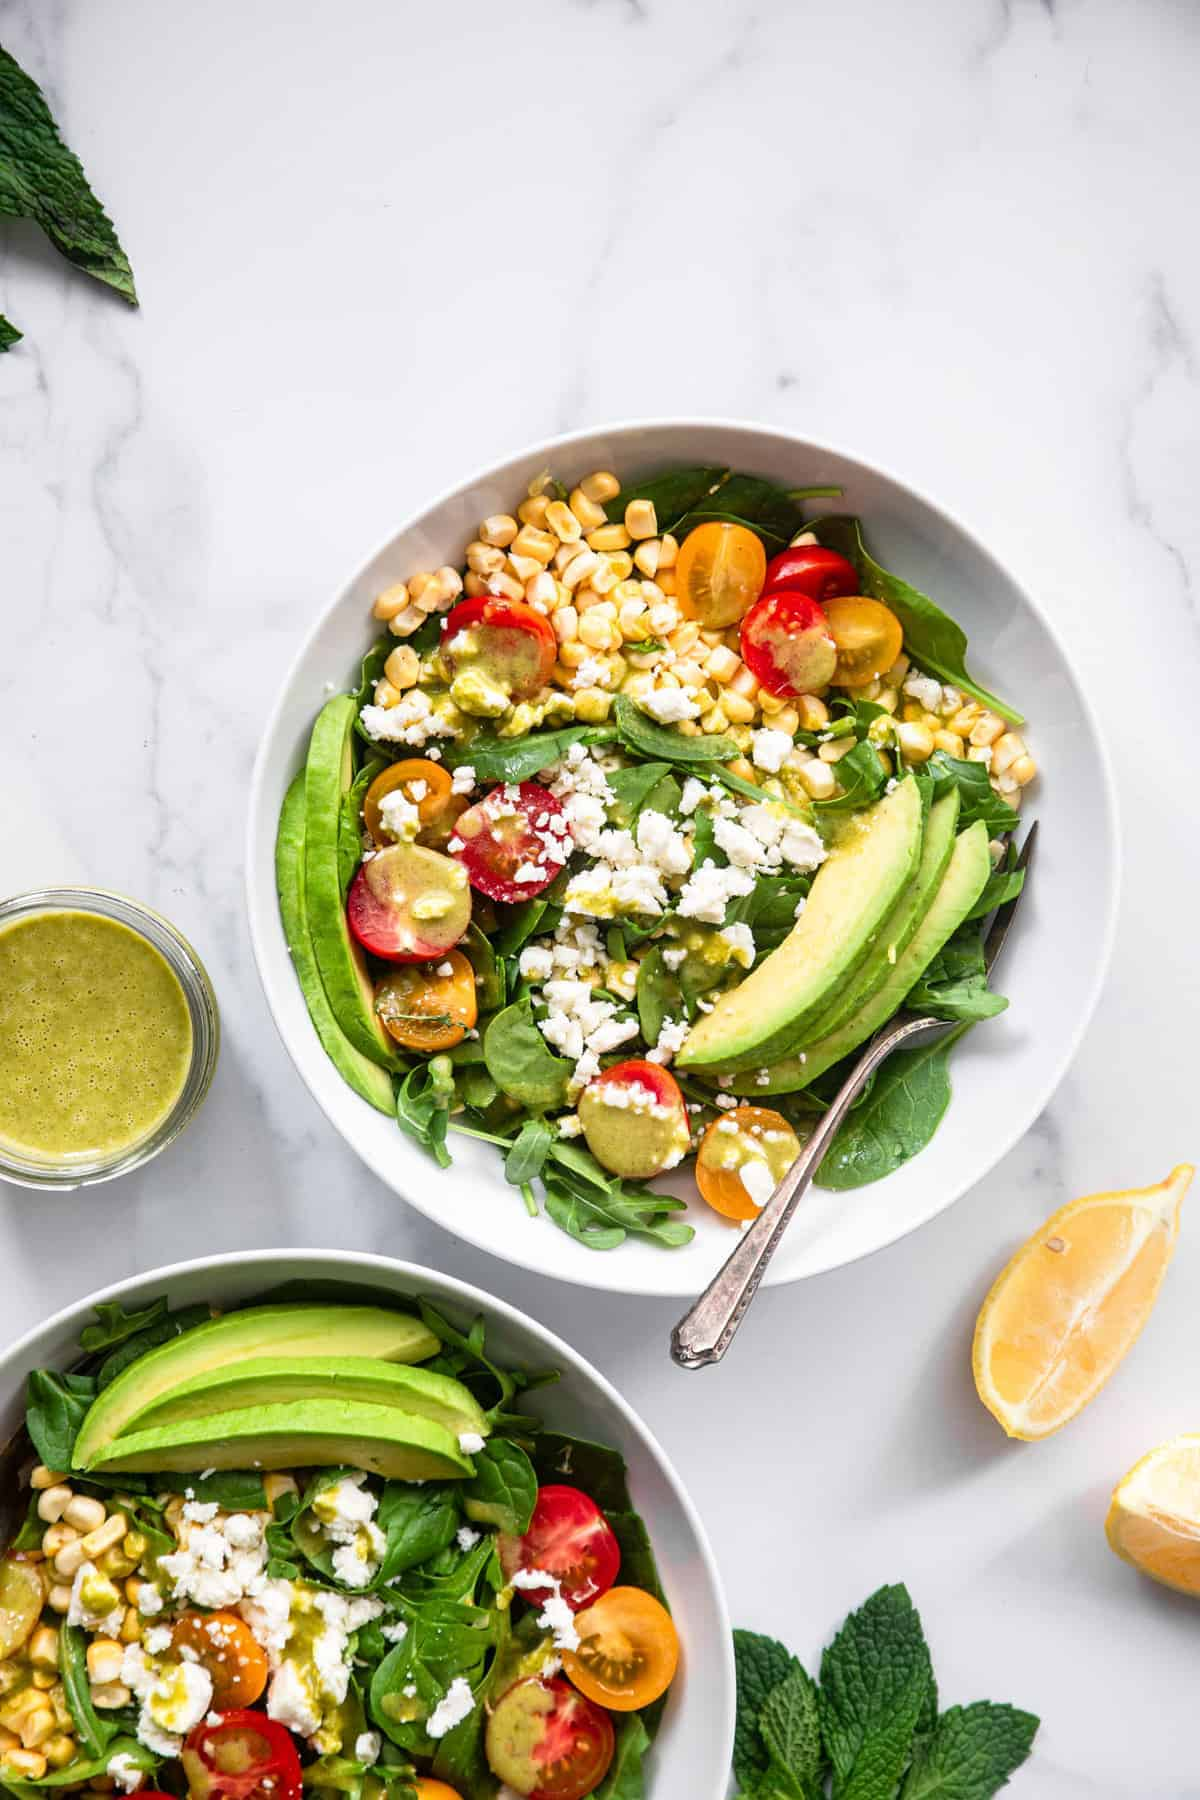 top view of corn feta salad in a bowl with spoon and sauce on the side